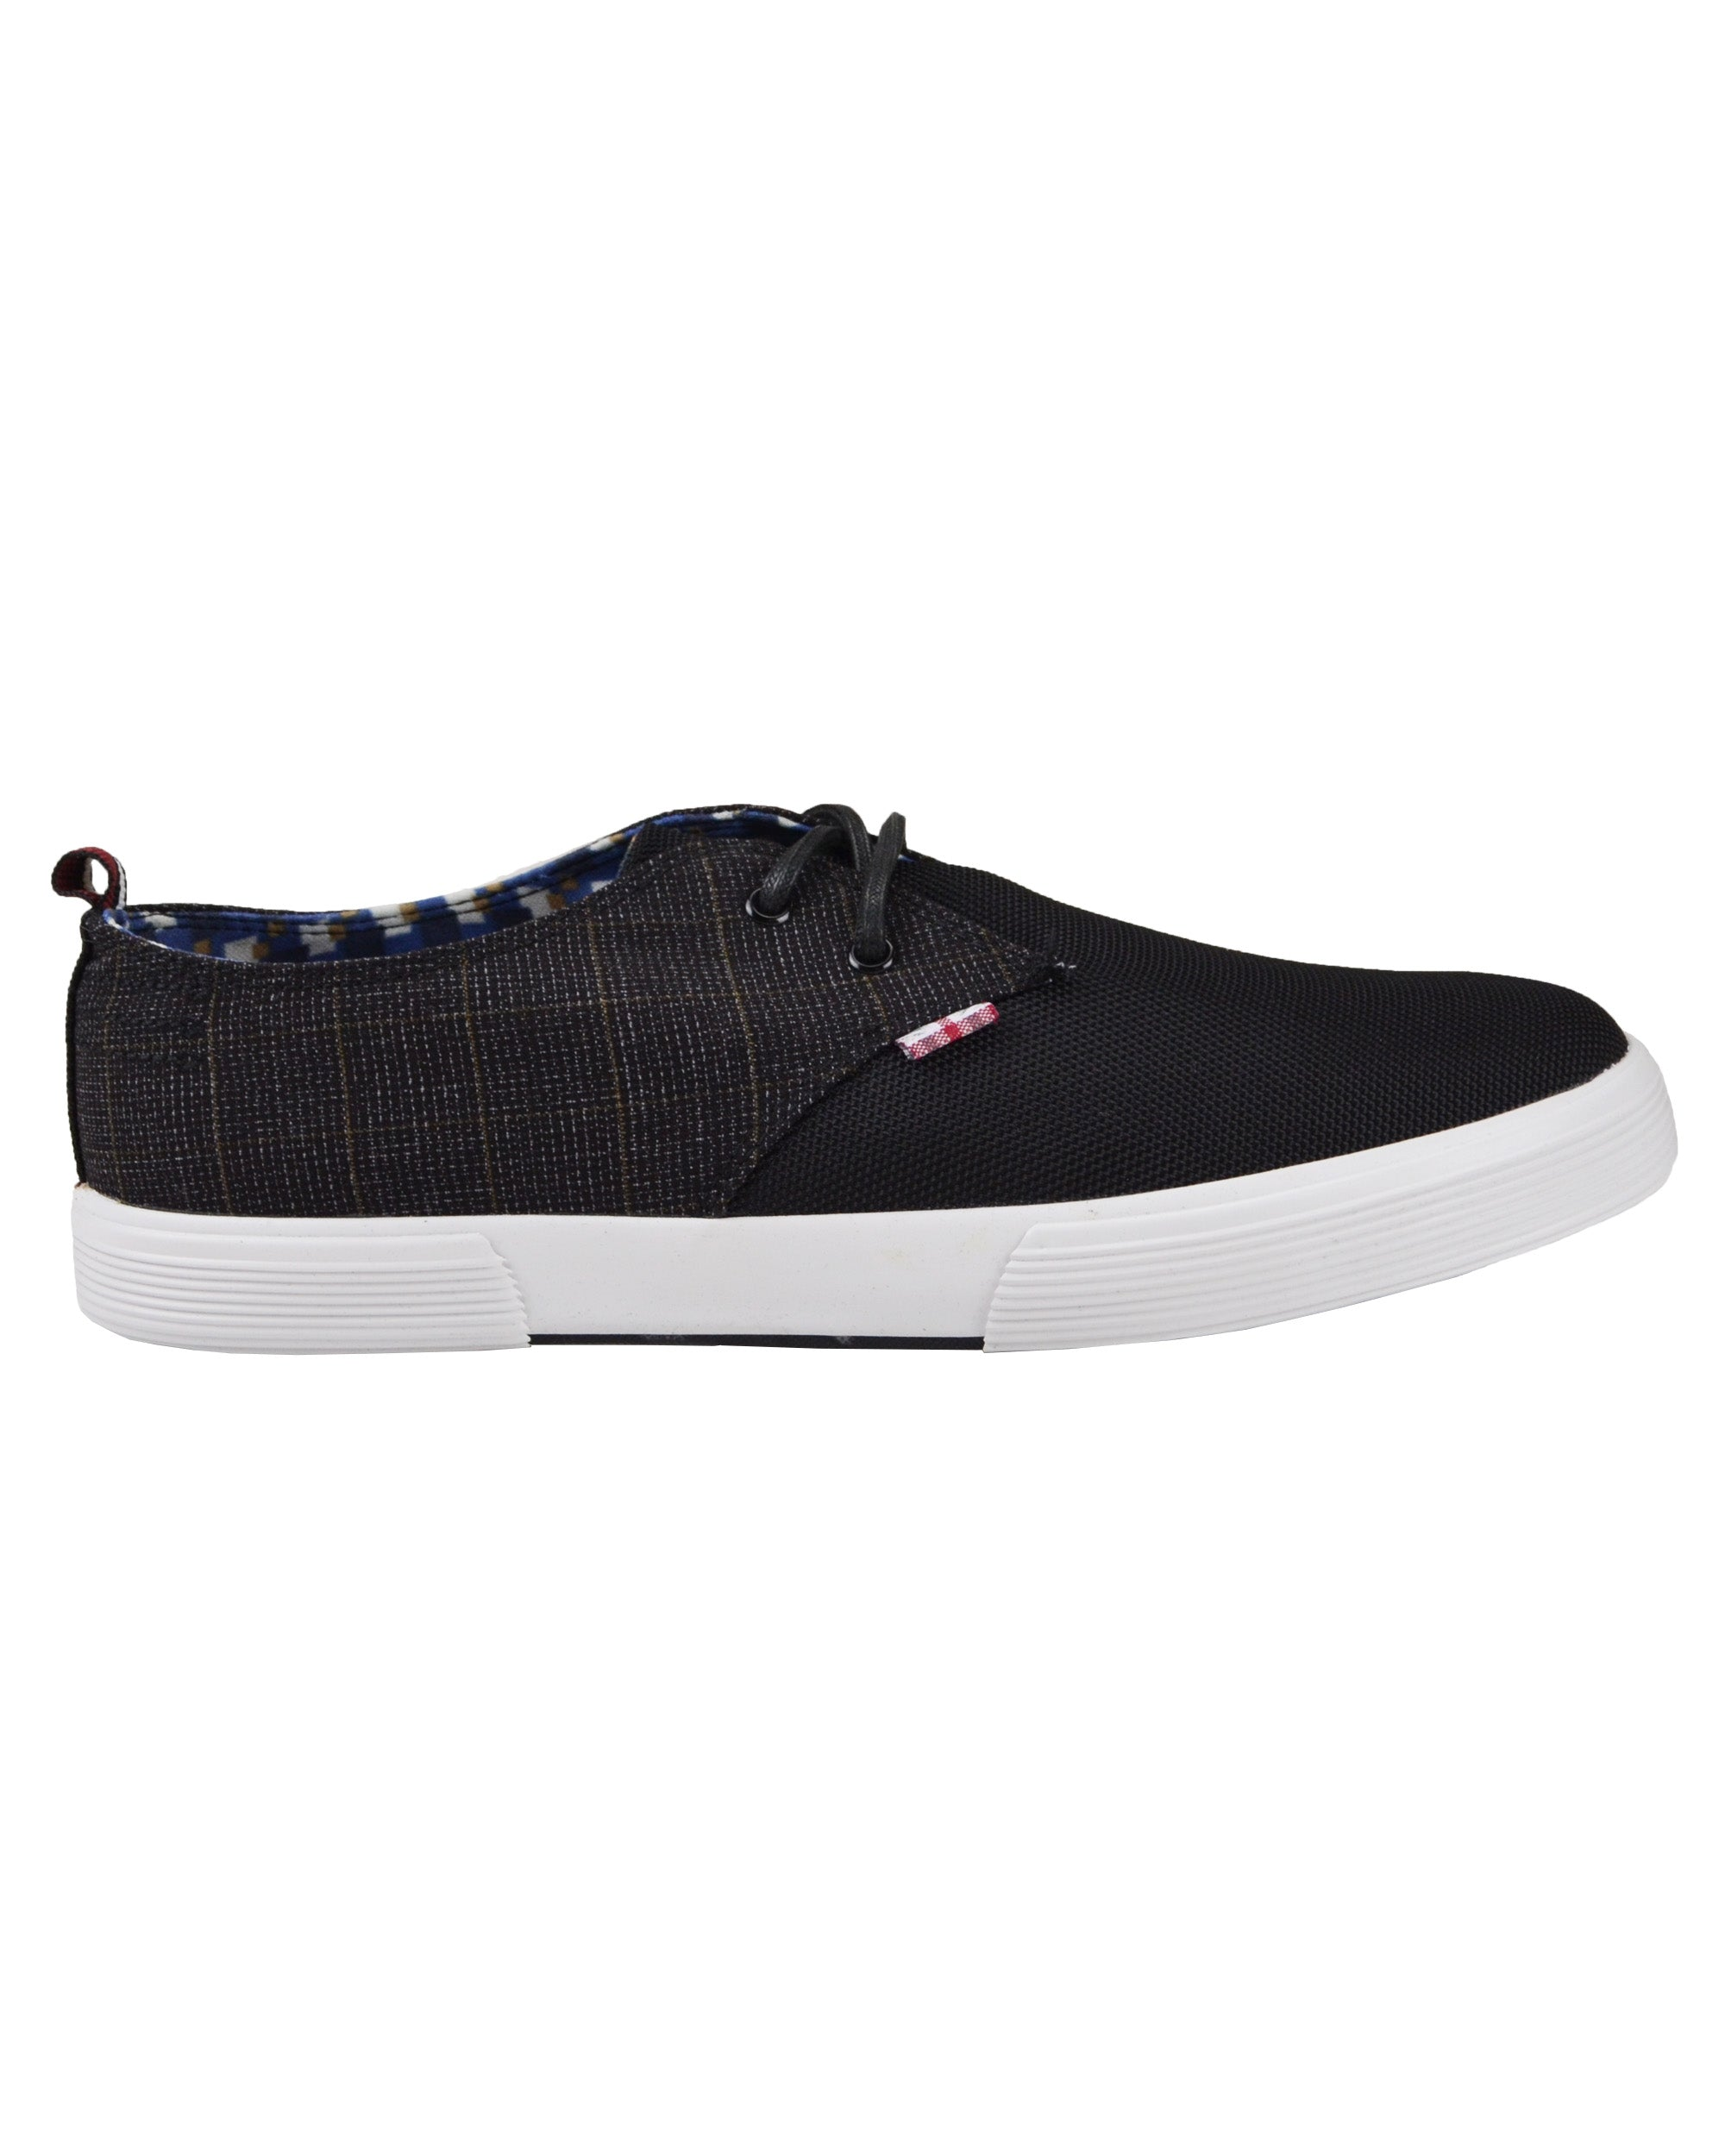 Bristol Mixed-Media Sneaker - Black